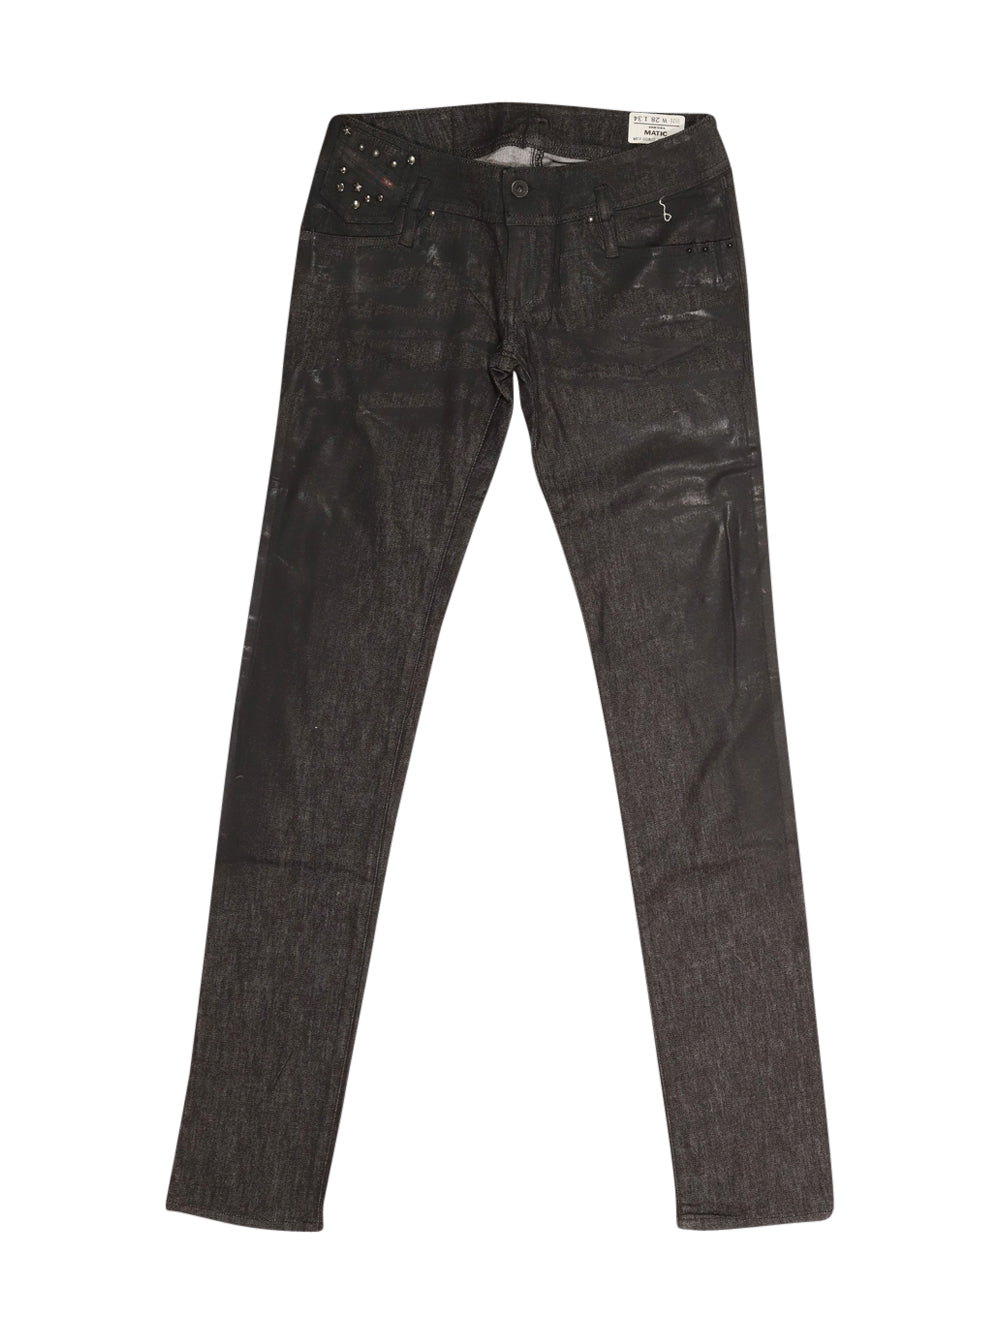 Front photo of Preloved Diesel Black Woman's trousers - size 10/M